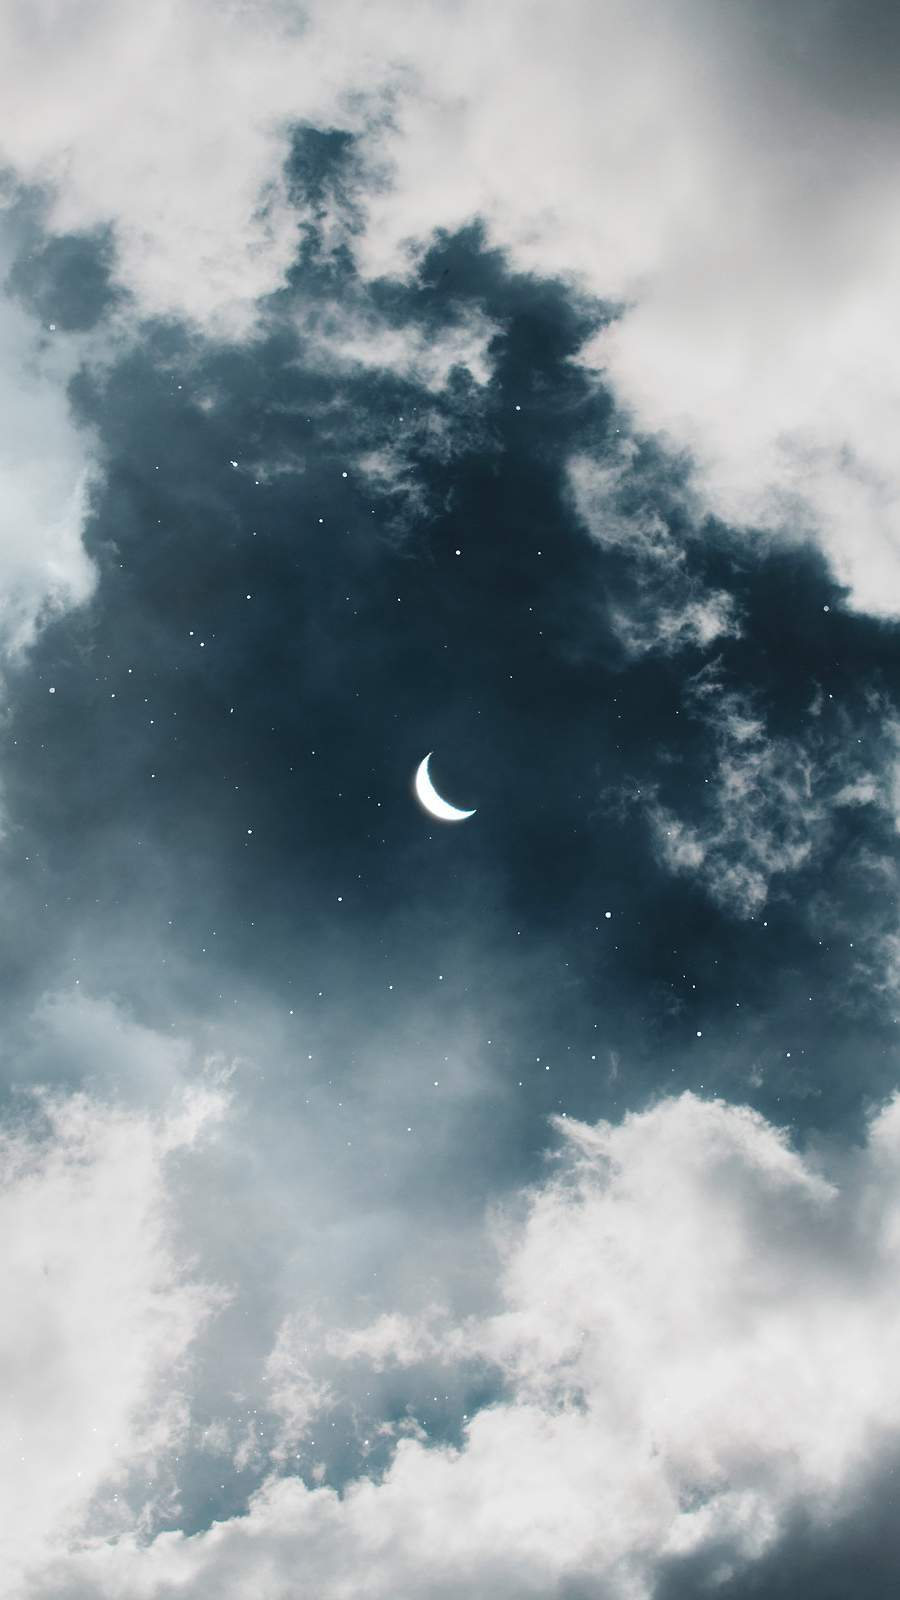 Twilight Moon in Clouds iPhone Wallpaper